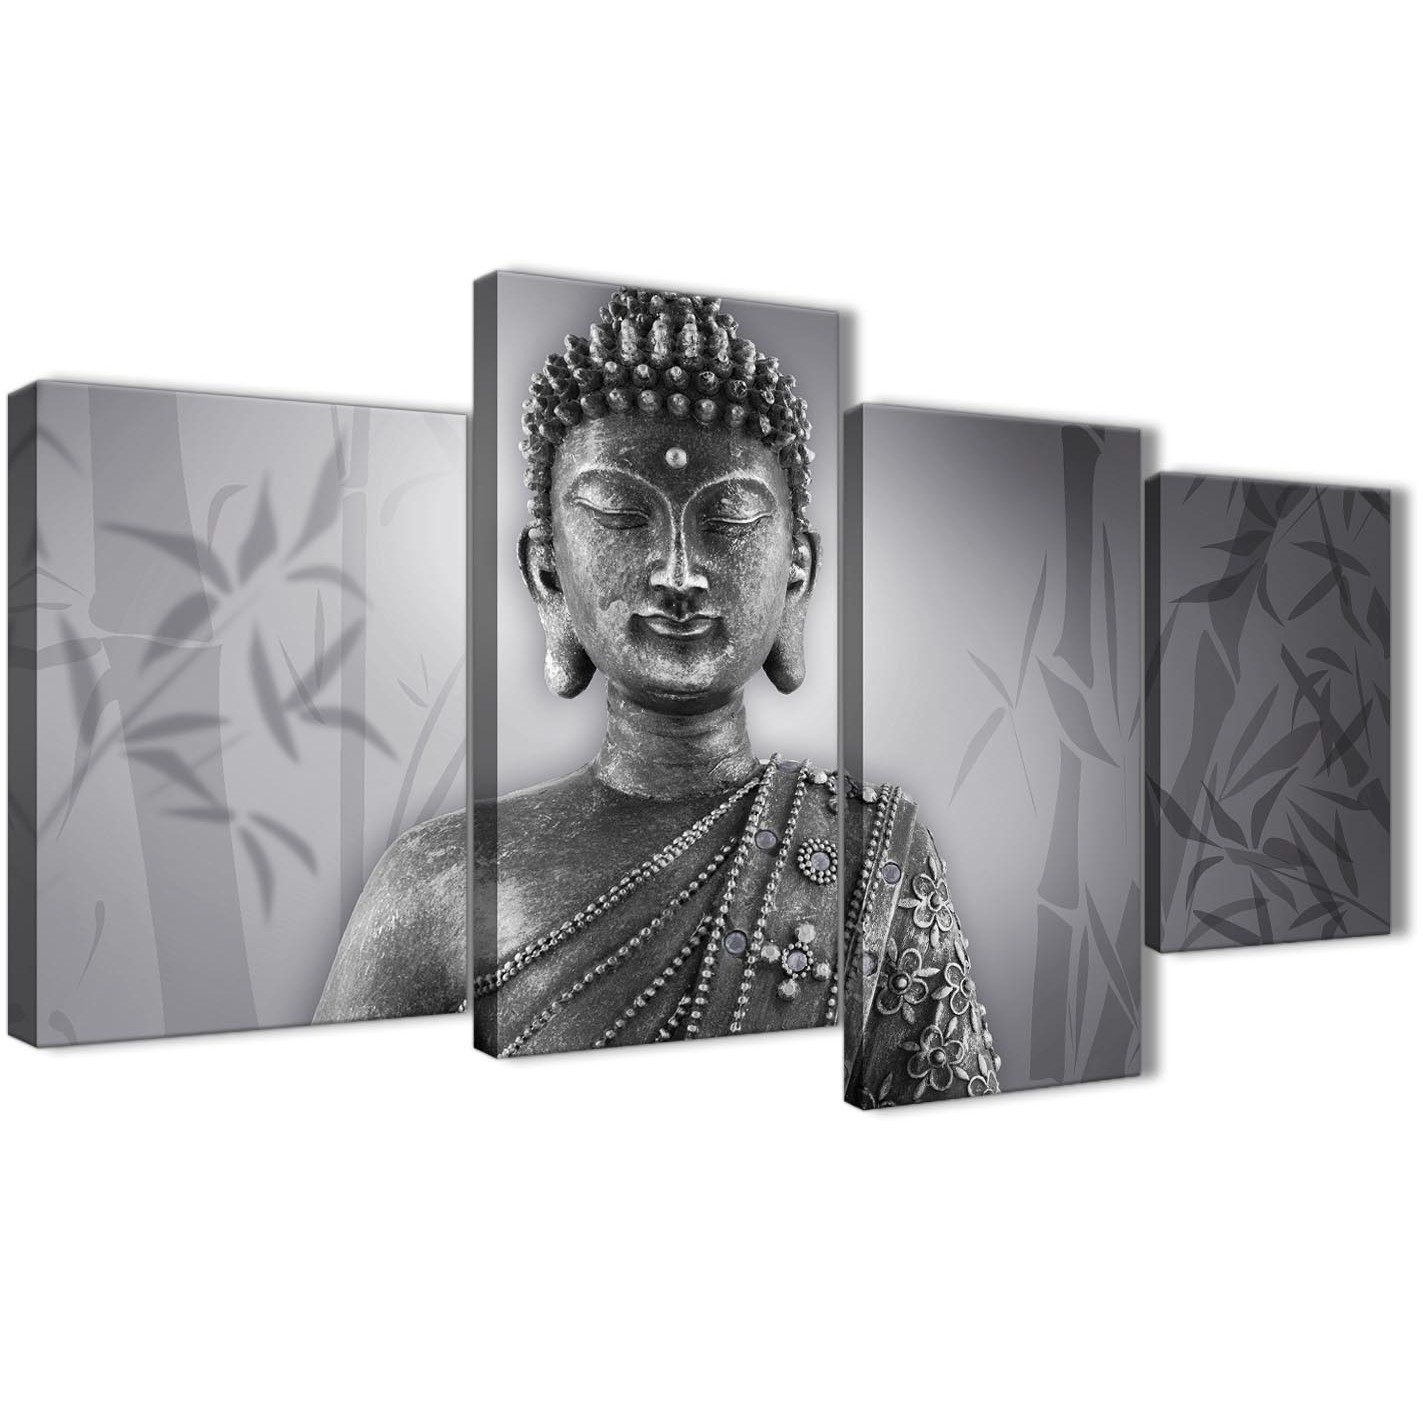 Extra large black white buddha living room canvas pictures decor 4373 130cm set of display gallery item 1